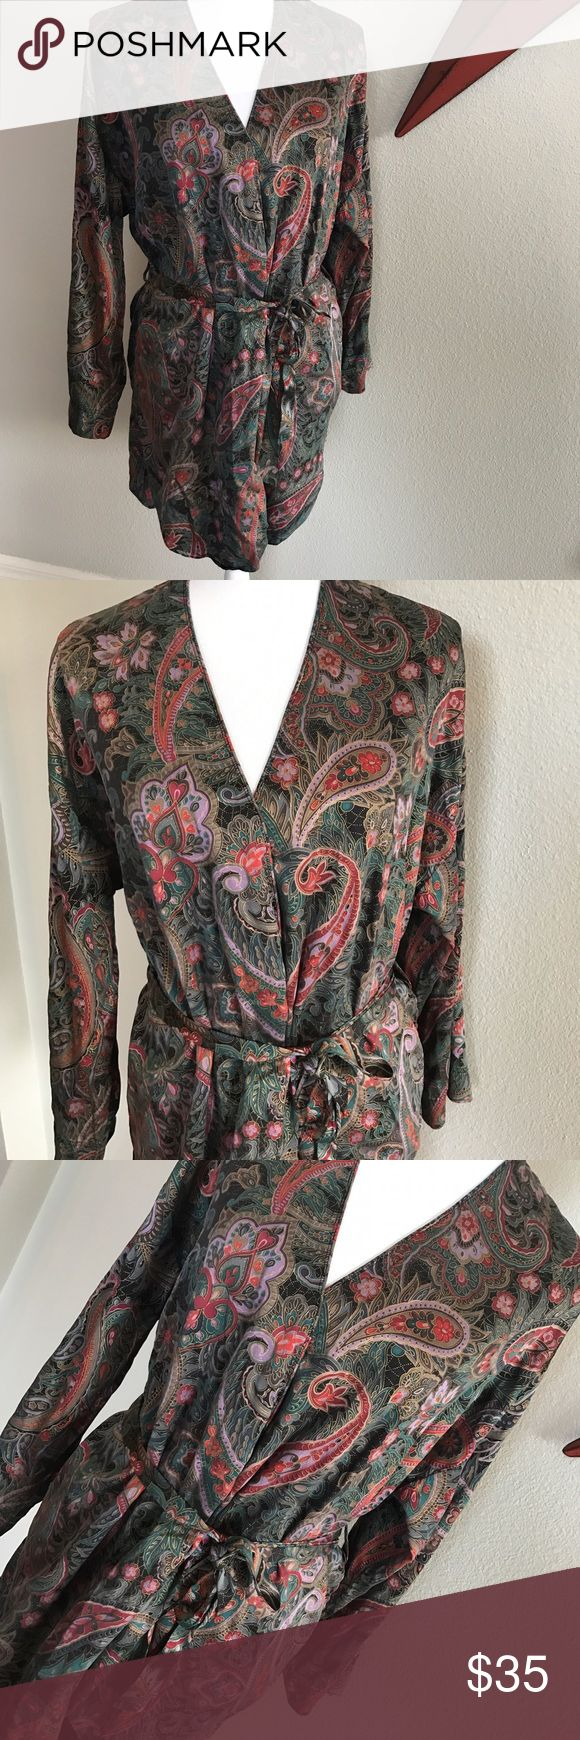 •{victoria's secret}• vintage 100% silk robe Vintage Victoria's Secret 100% Silk Paisley Robe. One size fits all. *would pair beautifully with the vintage VS green bodysuit also in my closet. 10% discount when bundling 2 or more items. Victoria's Secret Intimates & Sleepwear Robes